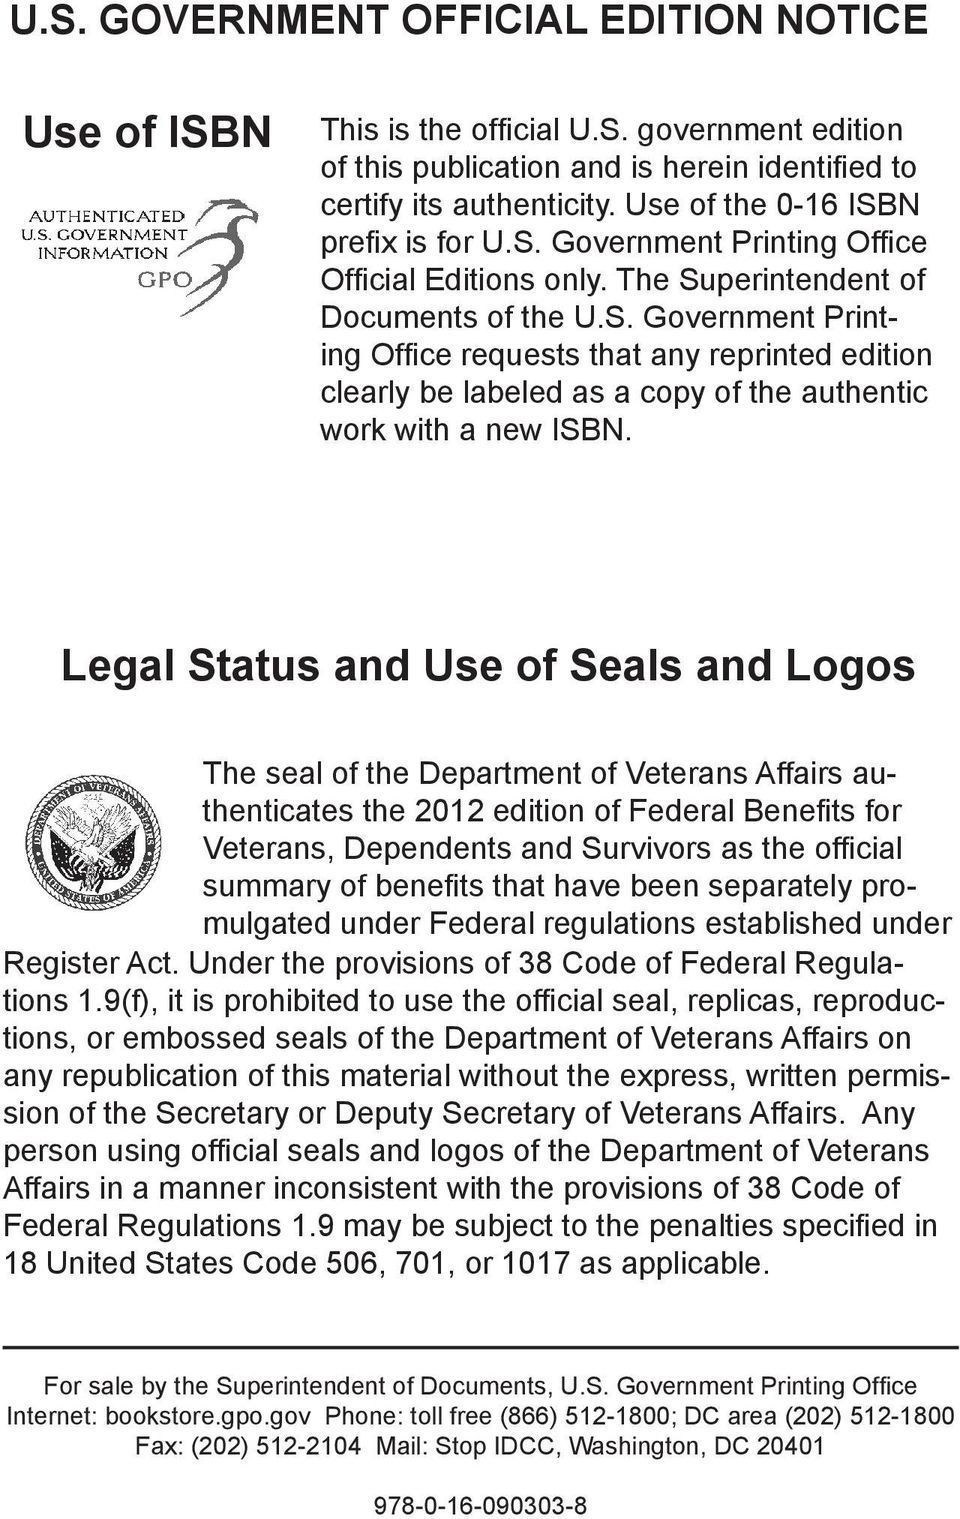 Legal Status and Use of Seals and Logos The seal of the Department of Veterans Affairs authenticates the 2012 edition of Federal Benefits for Veterans, Dependents and Survivors as the official